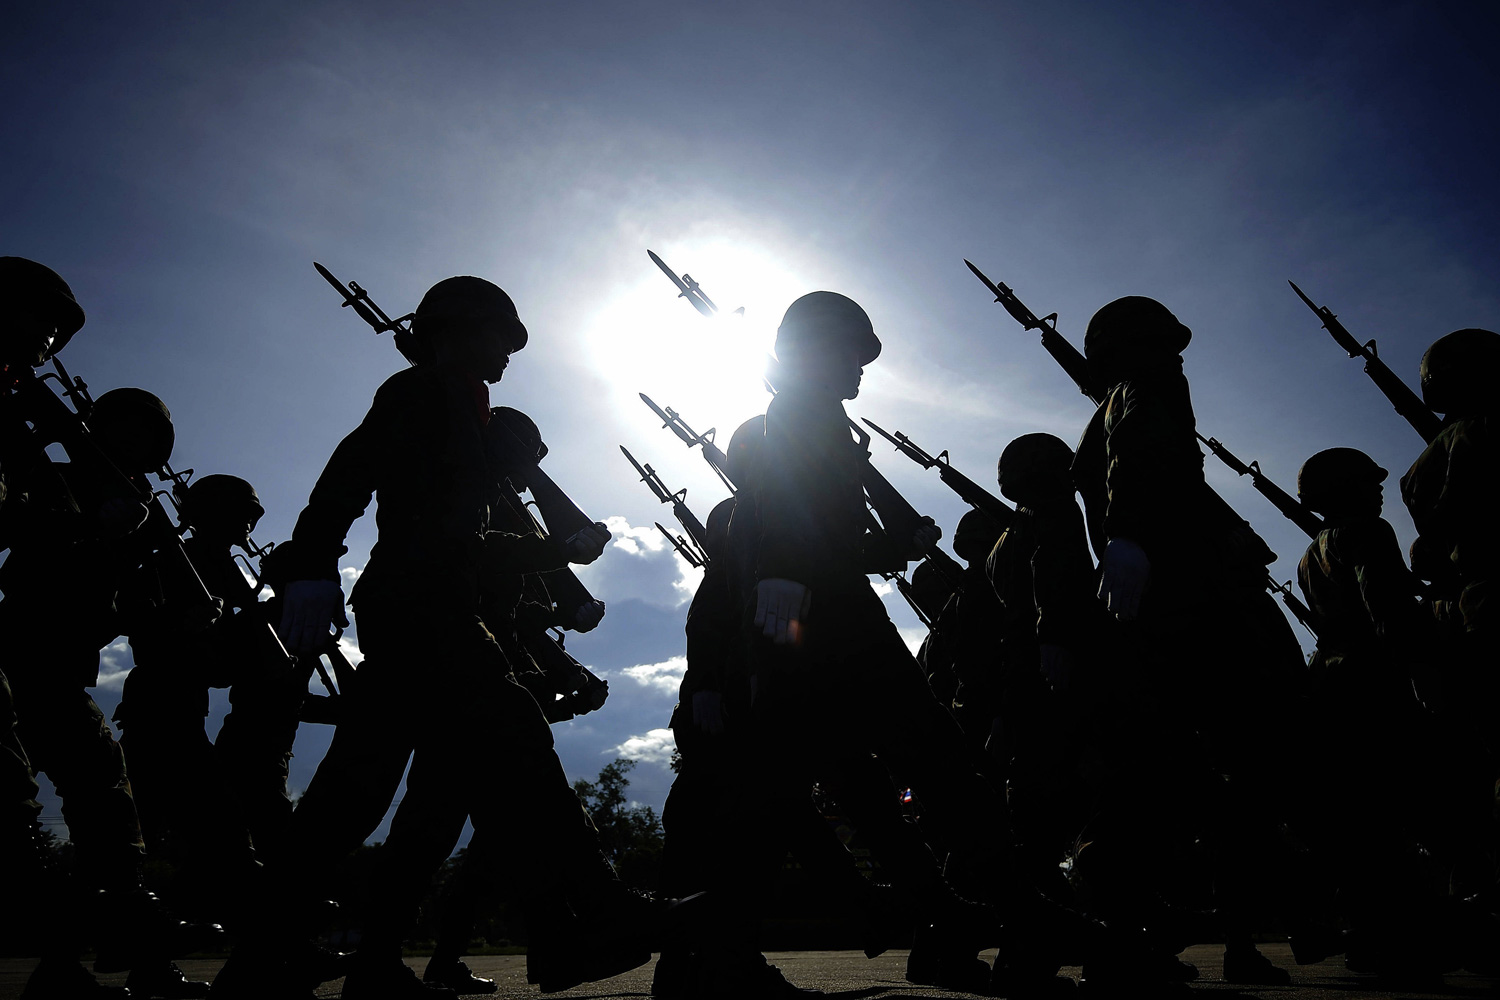 January 18, 2012. Thai soldiers march in a parade as part of celebrations of the Royal Thai Army national day at a navy base in Thailand's restive southern province of Narathiwat.